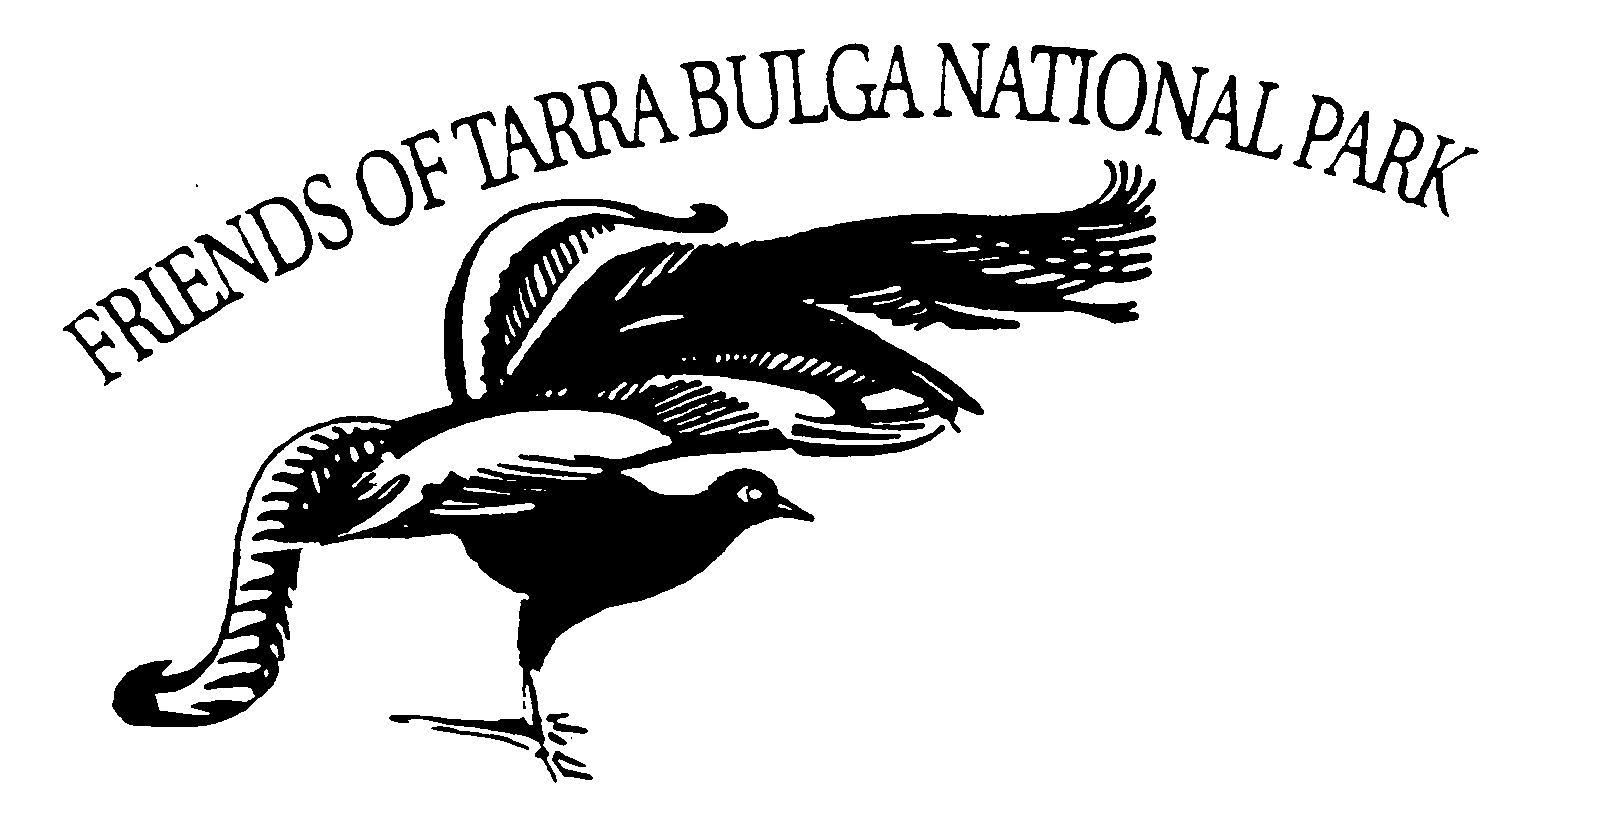 Friends of Tarra-Bulga National Park